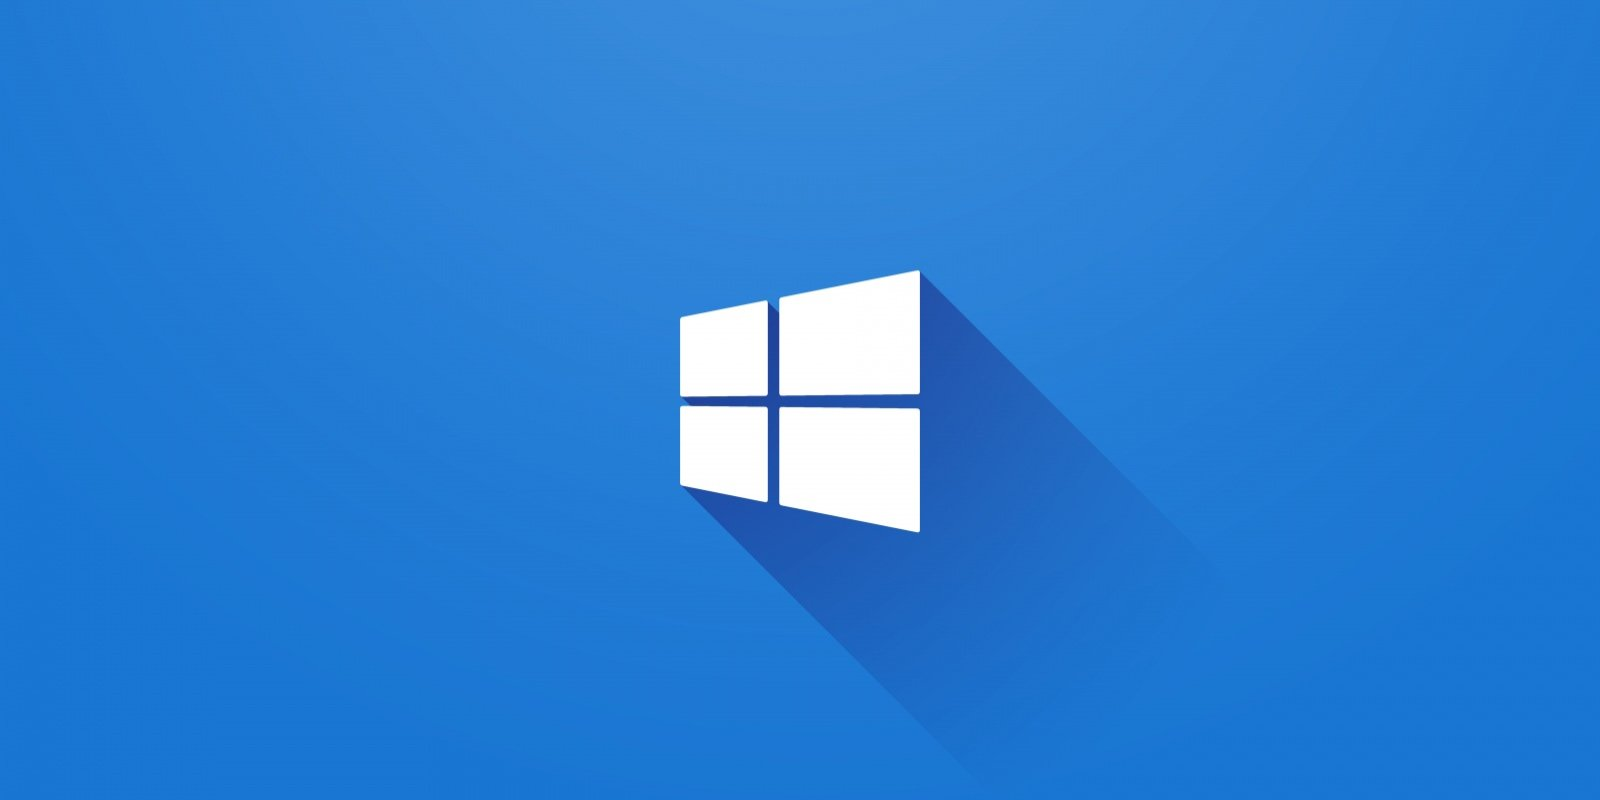 New Windows 10 Update Leaks Info On Upcoming 21H1 Feature Update